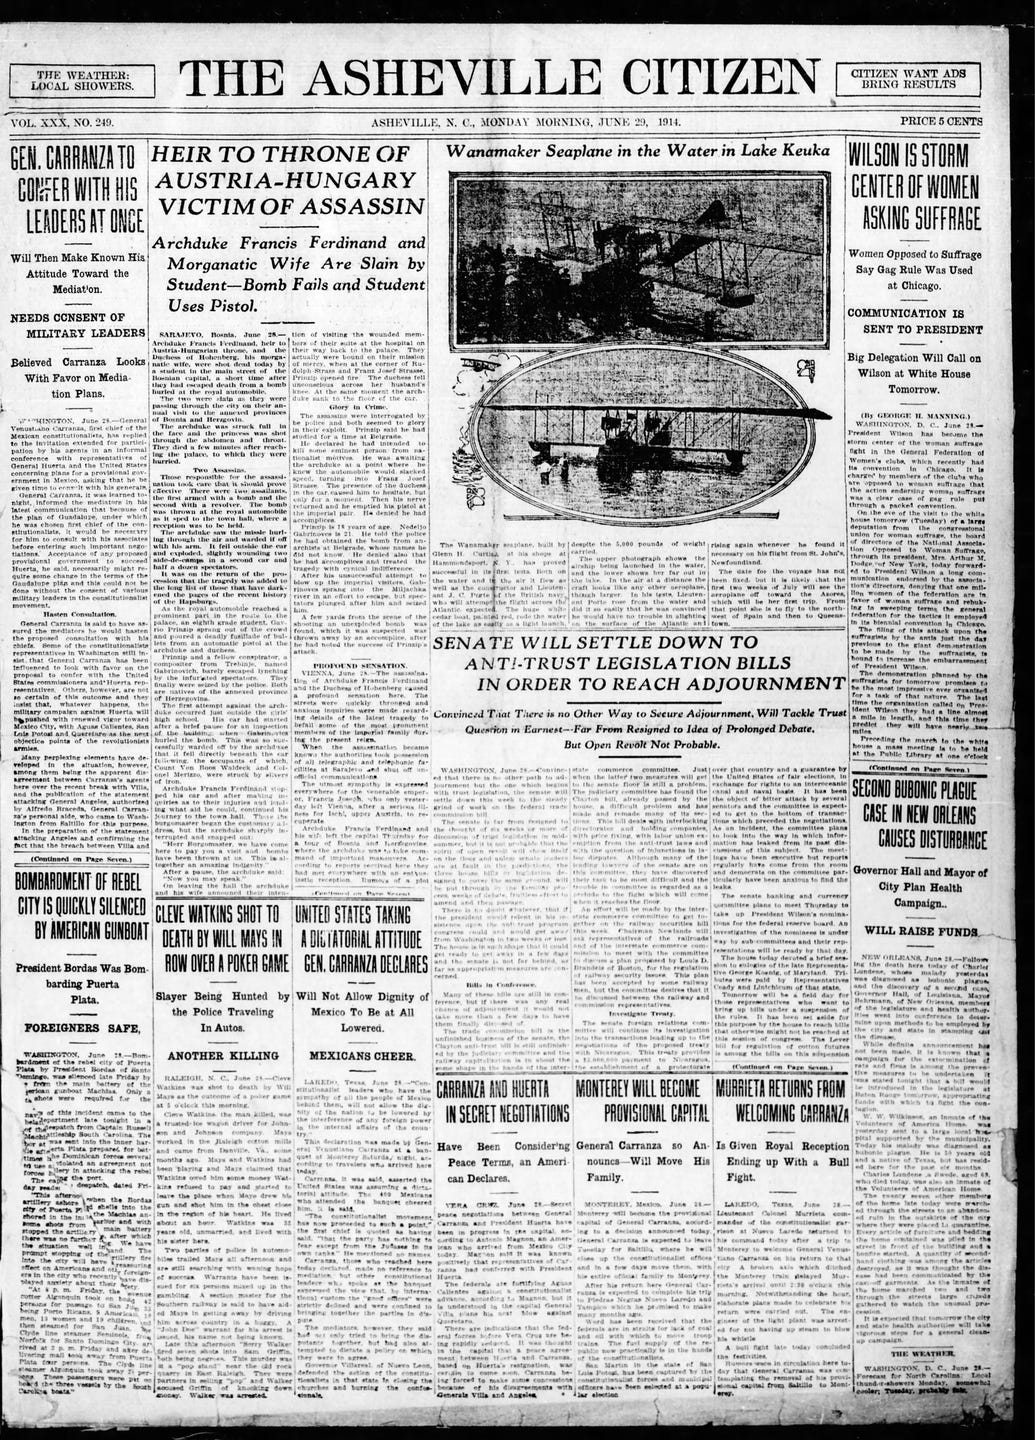 Historic front pages: Asheville Citizen during World War I